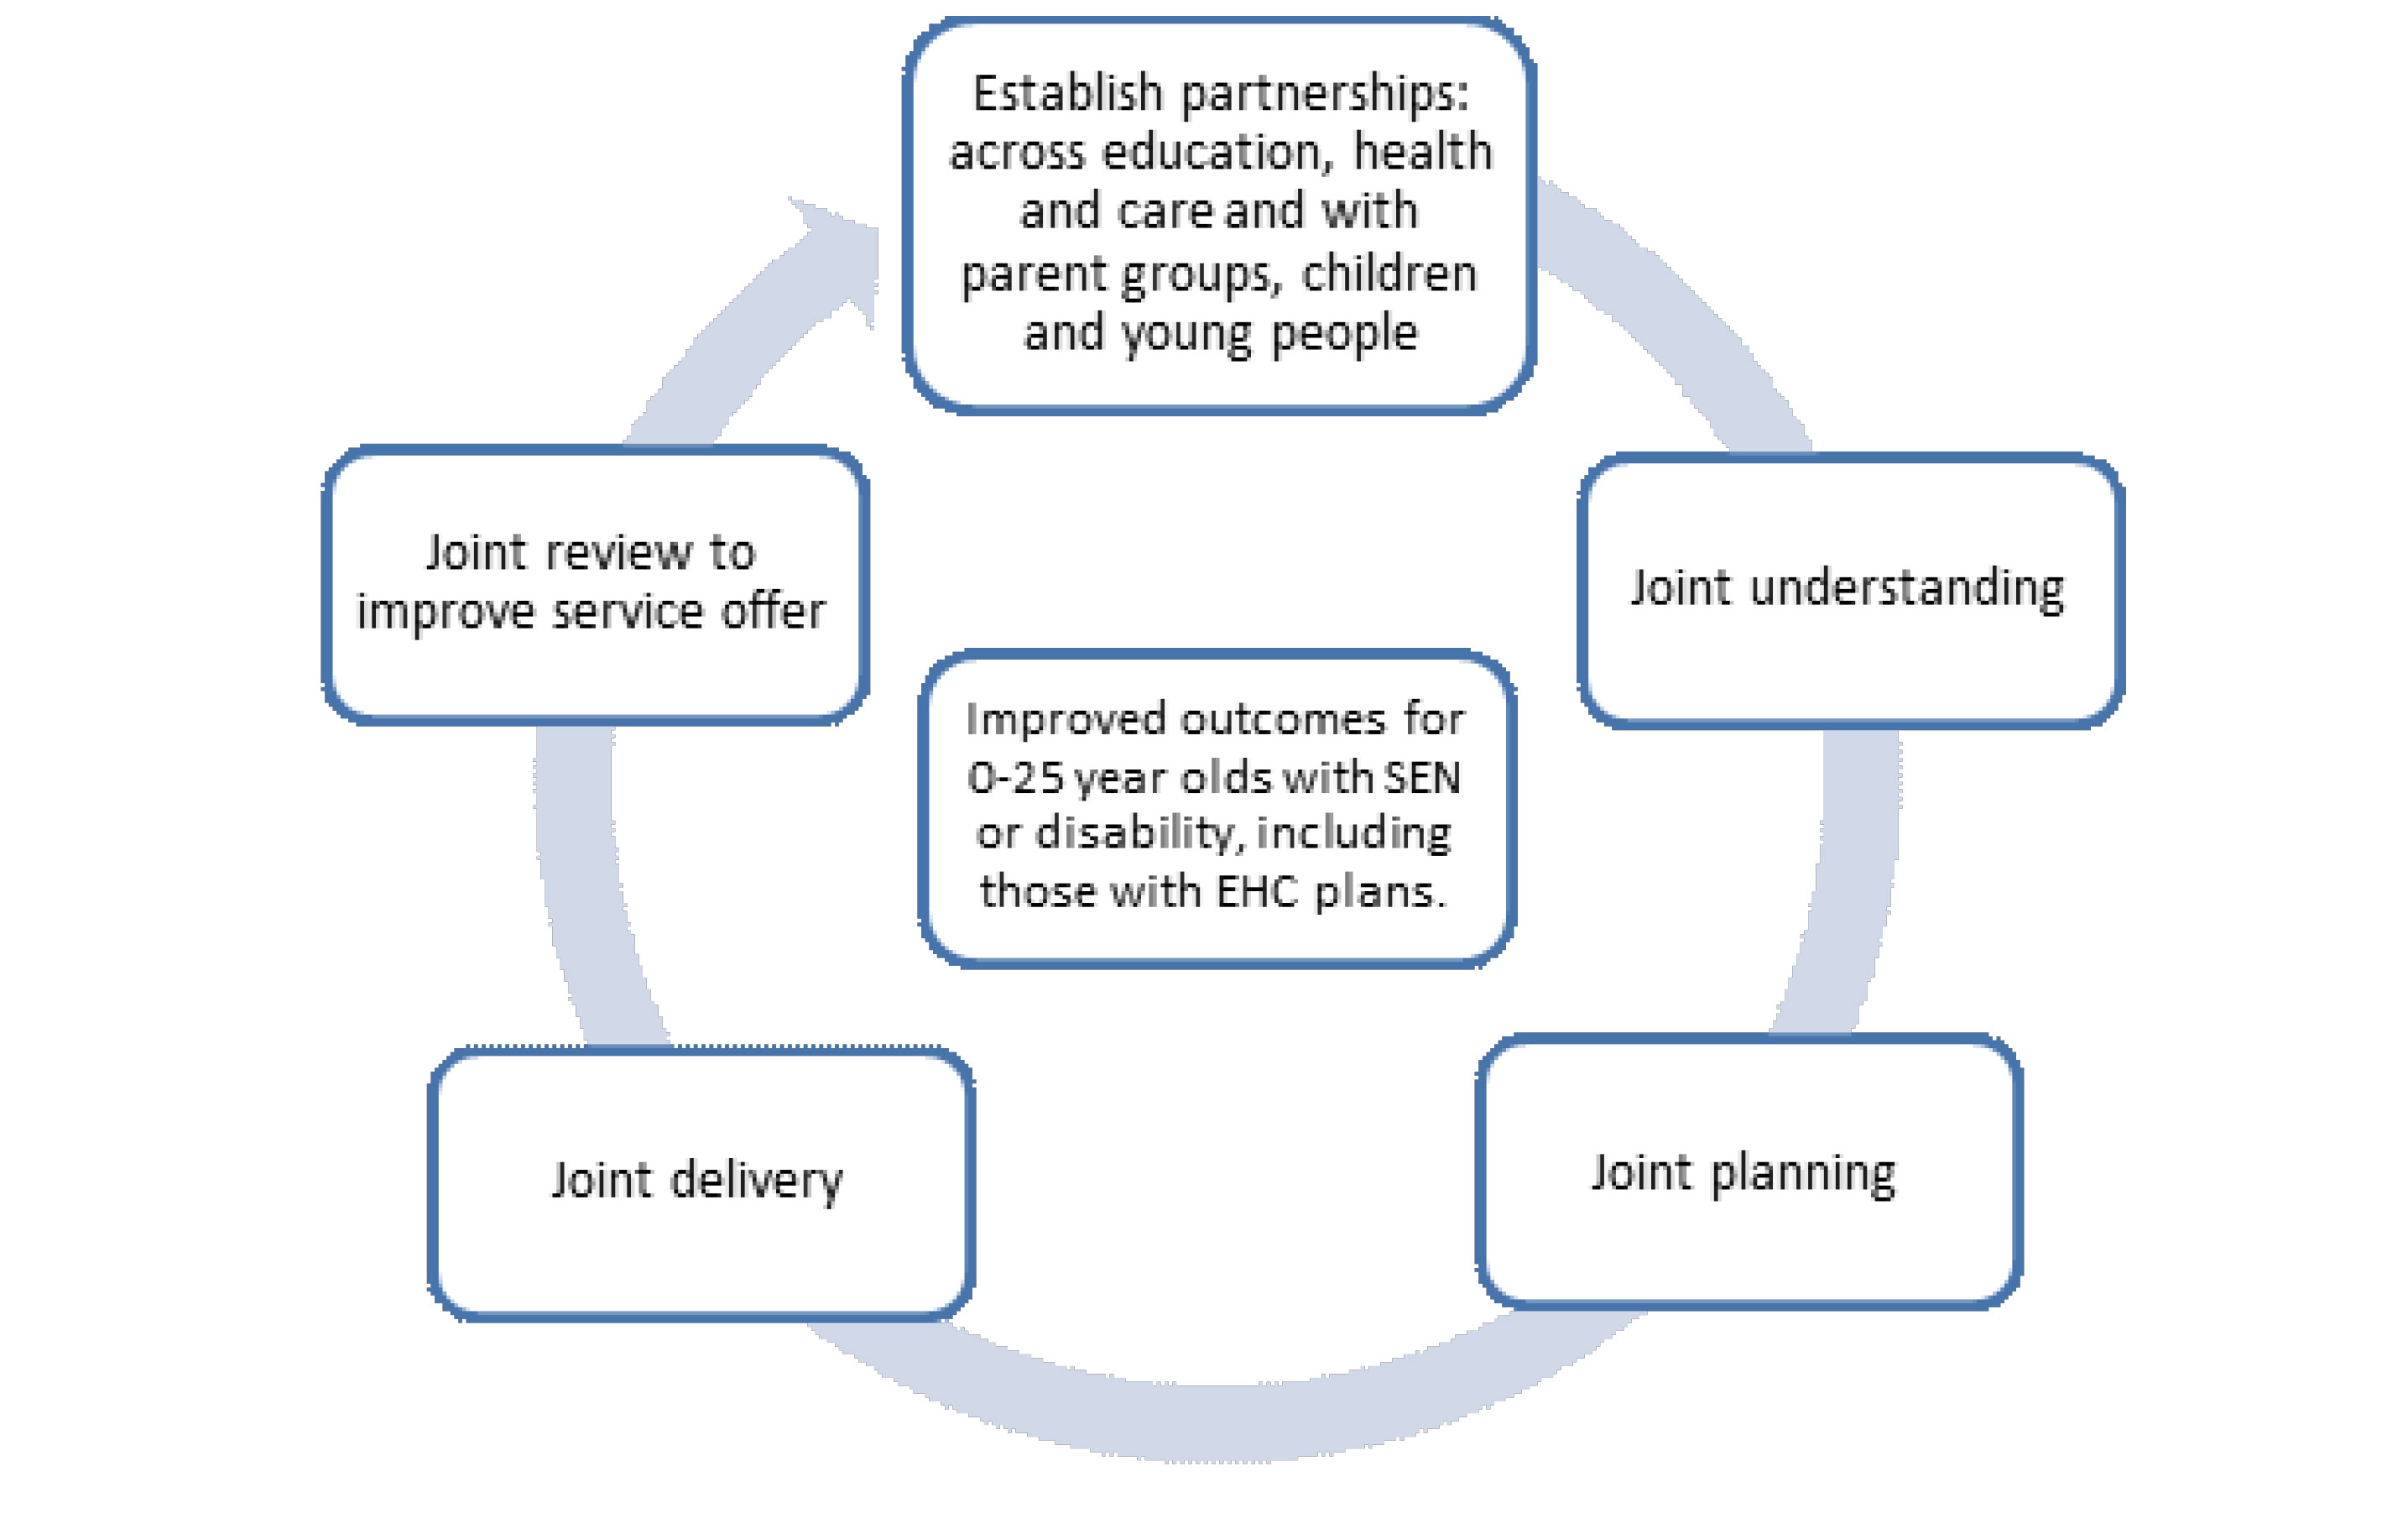 The joint commissioning cycle Establishing effective partnerships across education, health and care 3.